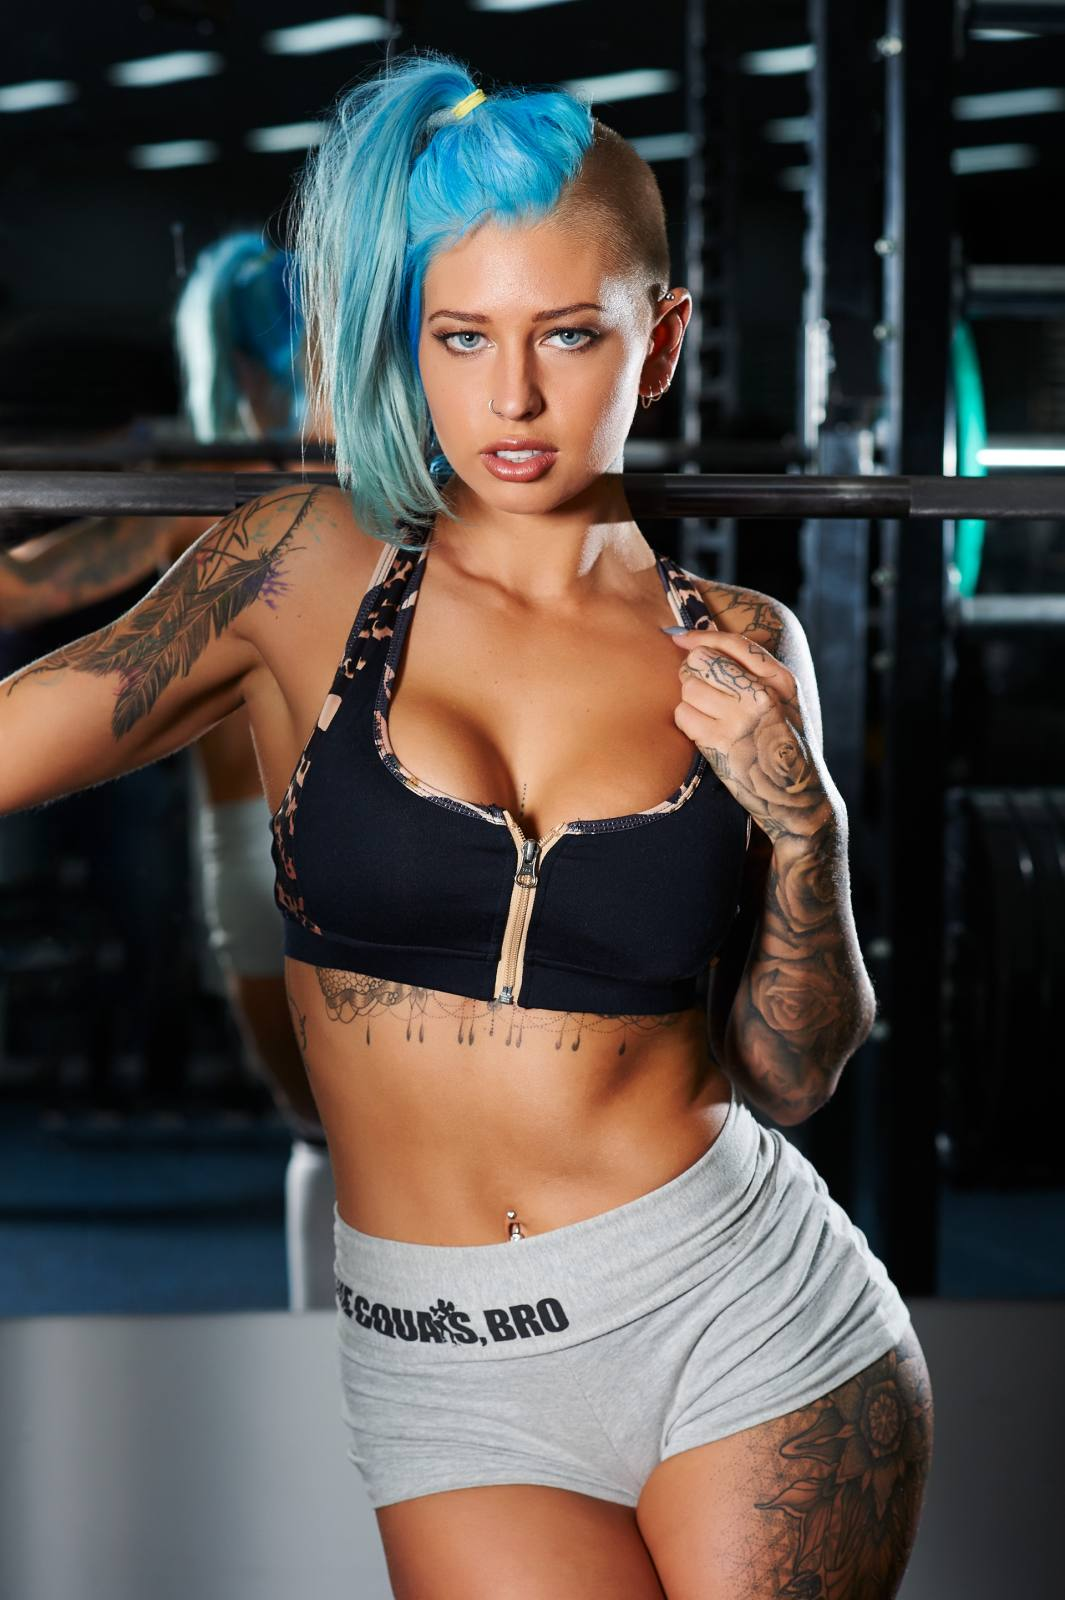 Vicky Aisha Hot Sports Bra Blue Hair Pics - Vicky Aisha Hot Sports Bra Blue Hair Pics